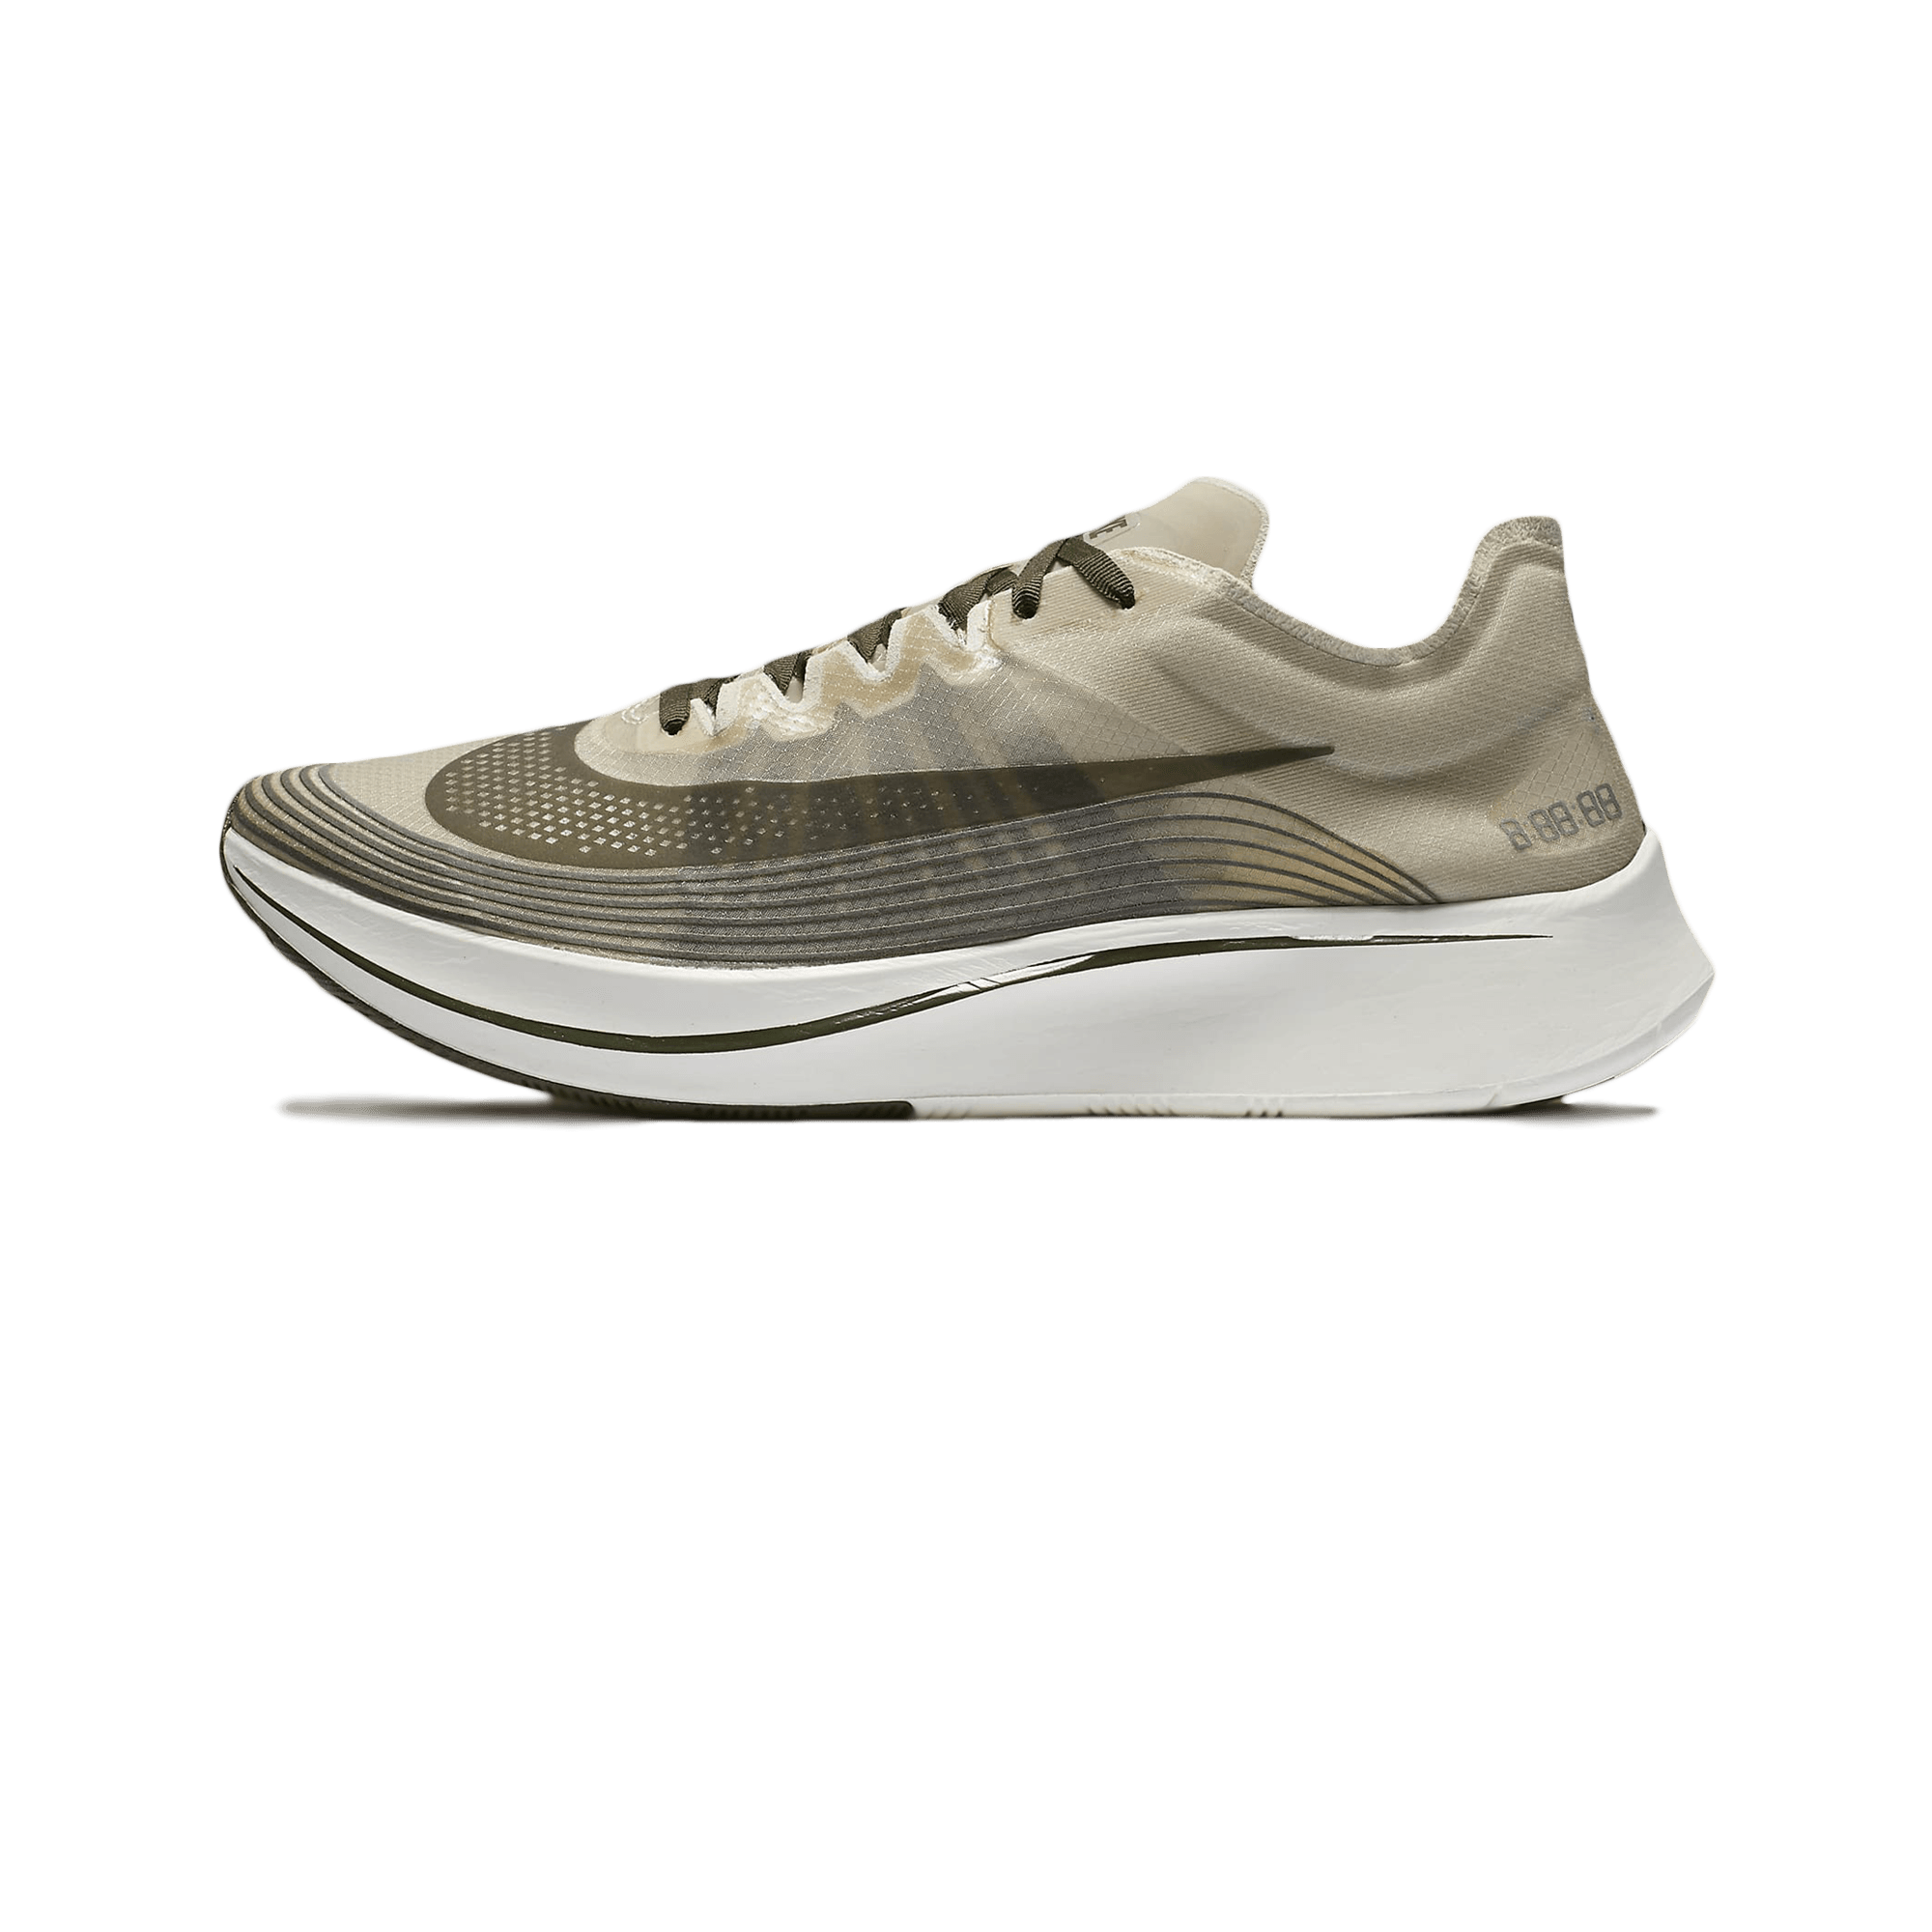 Zoom Fly SP dark loden/dark stucco